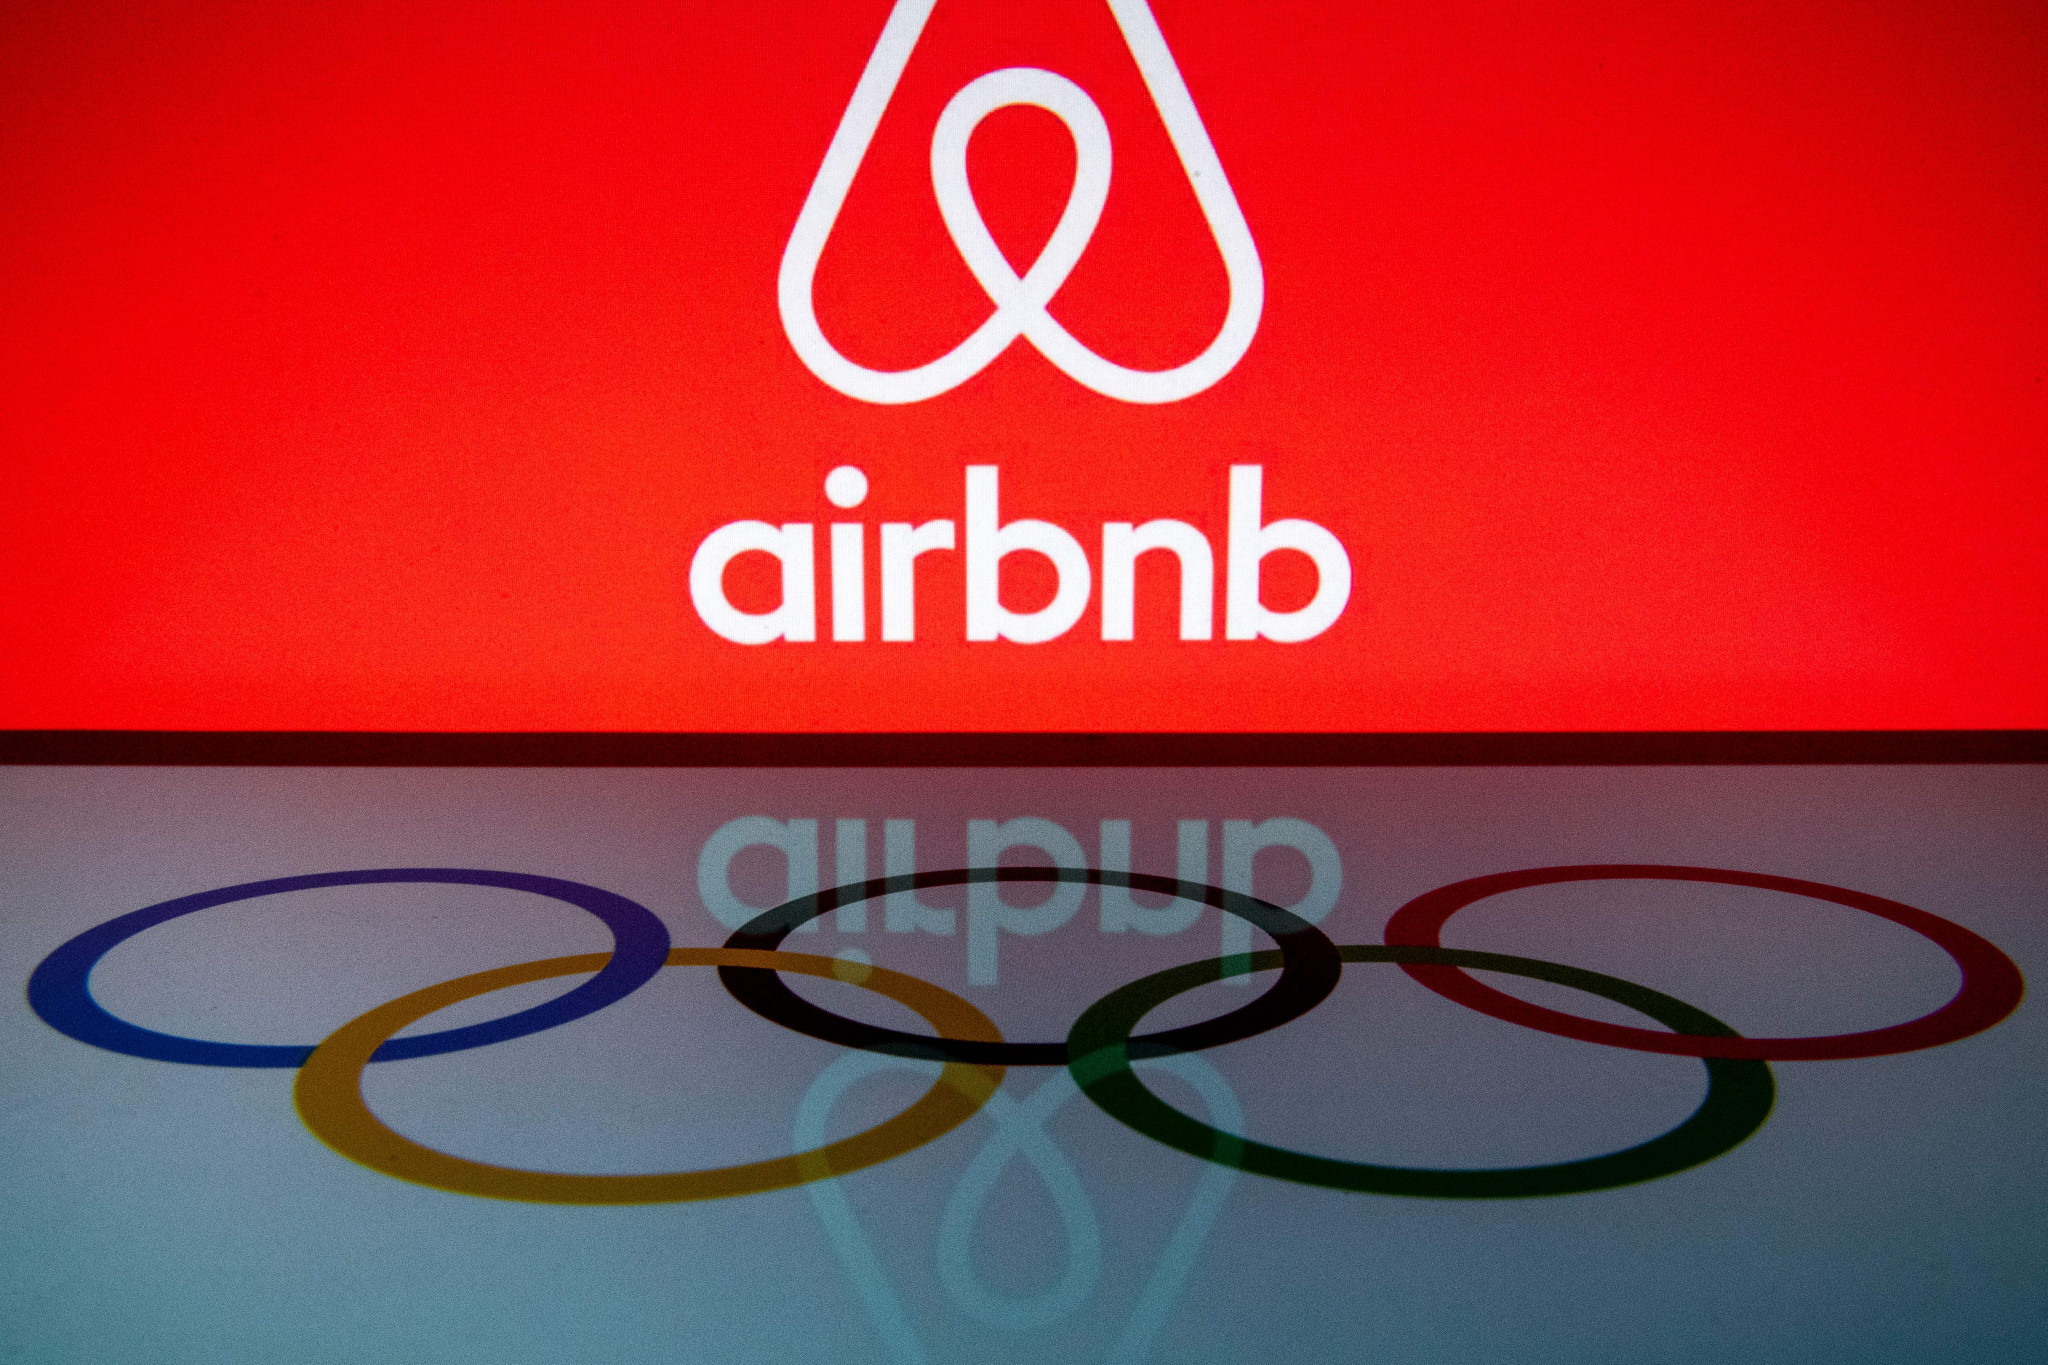 Airbnb announces $8 million Athlete Travel Grant scheme to support Olympians and Paralympians